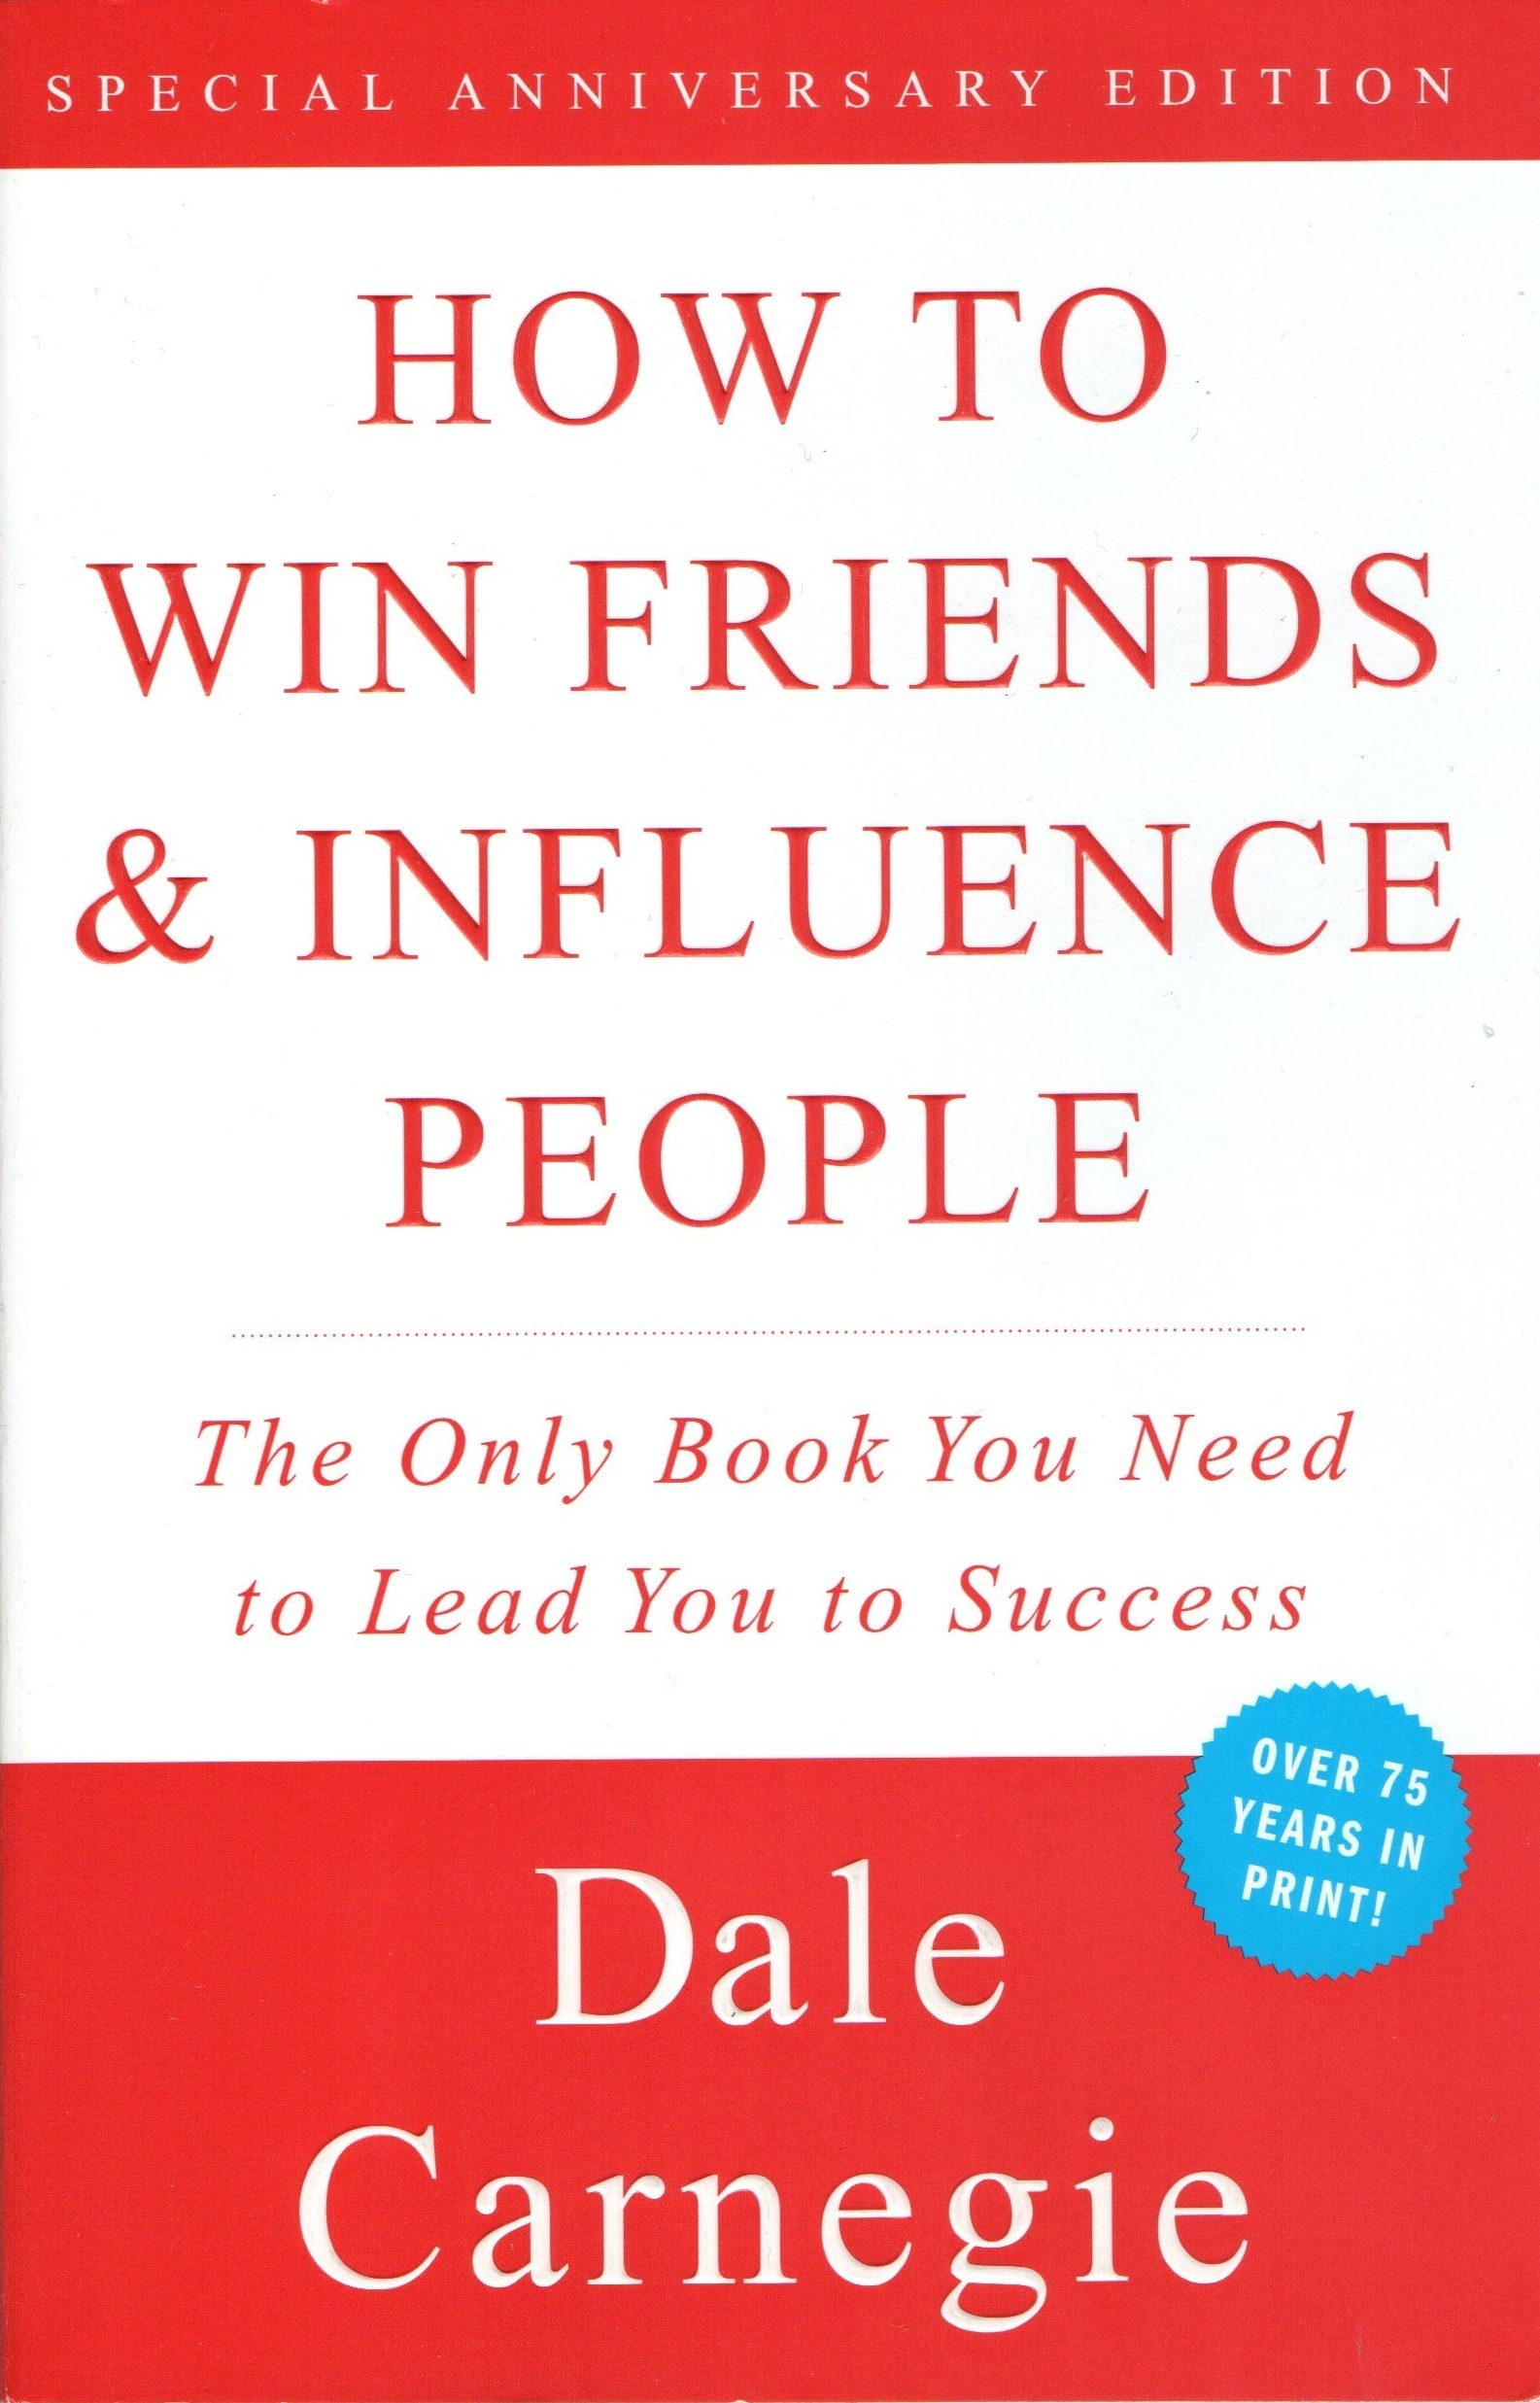 How to Win Friends & Influence Peopleby Dale Carnegie